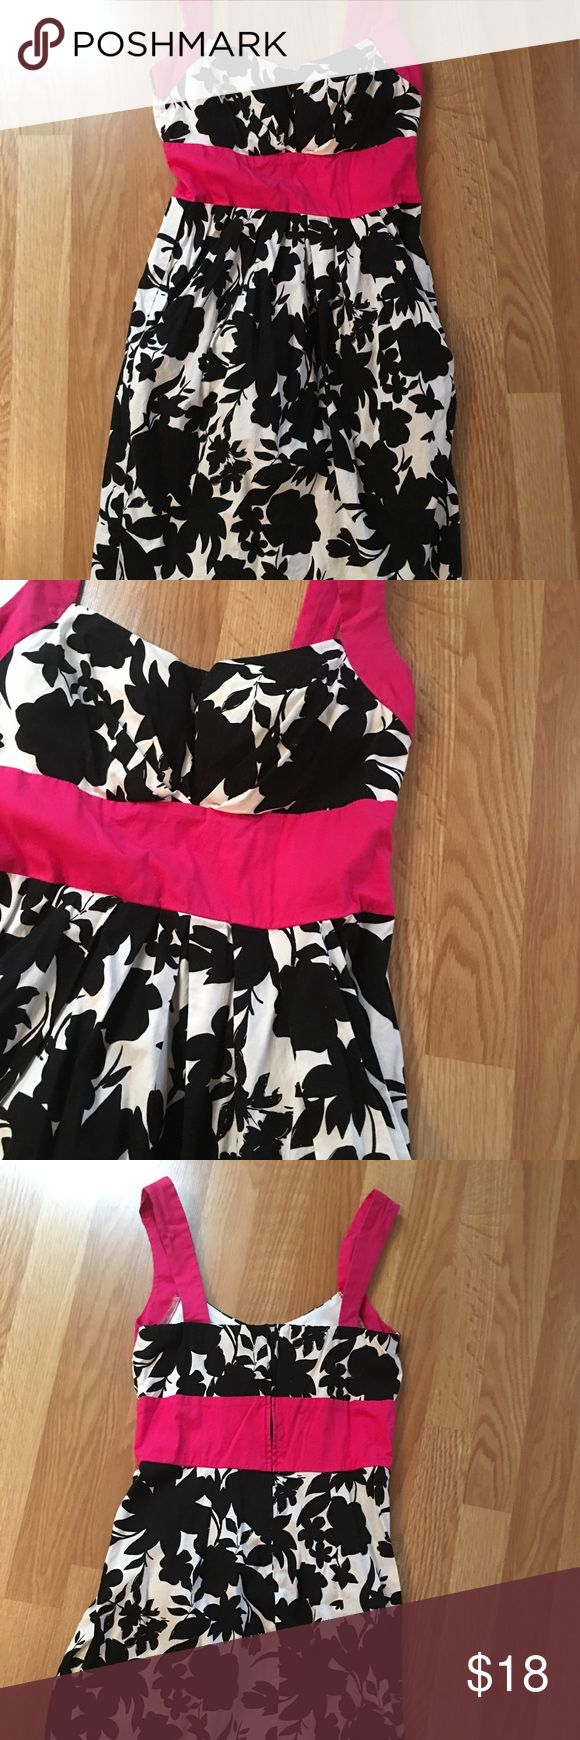 Adorable floral black/white dress with pockets! Sleeveless floral black and white cocktail dress with pockets. Cute pop of pink! I had cups sewn in and wore it one time for a wedding. This dress would be a great summer dress with some sandals or flats or dressed up with some heels! b.smart Dresses Mini